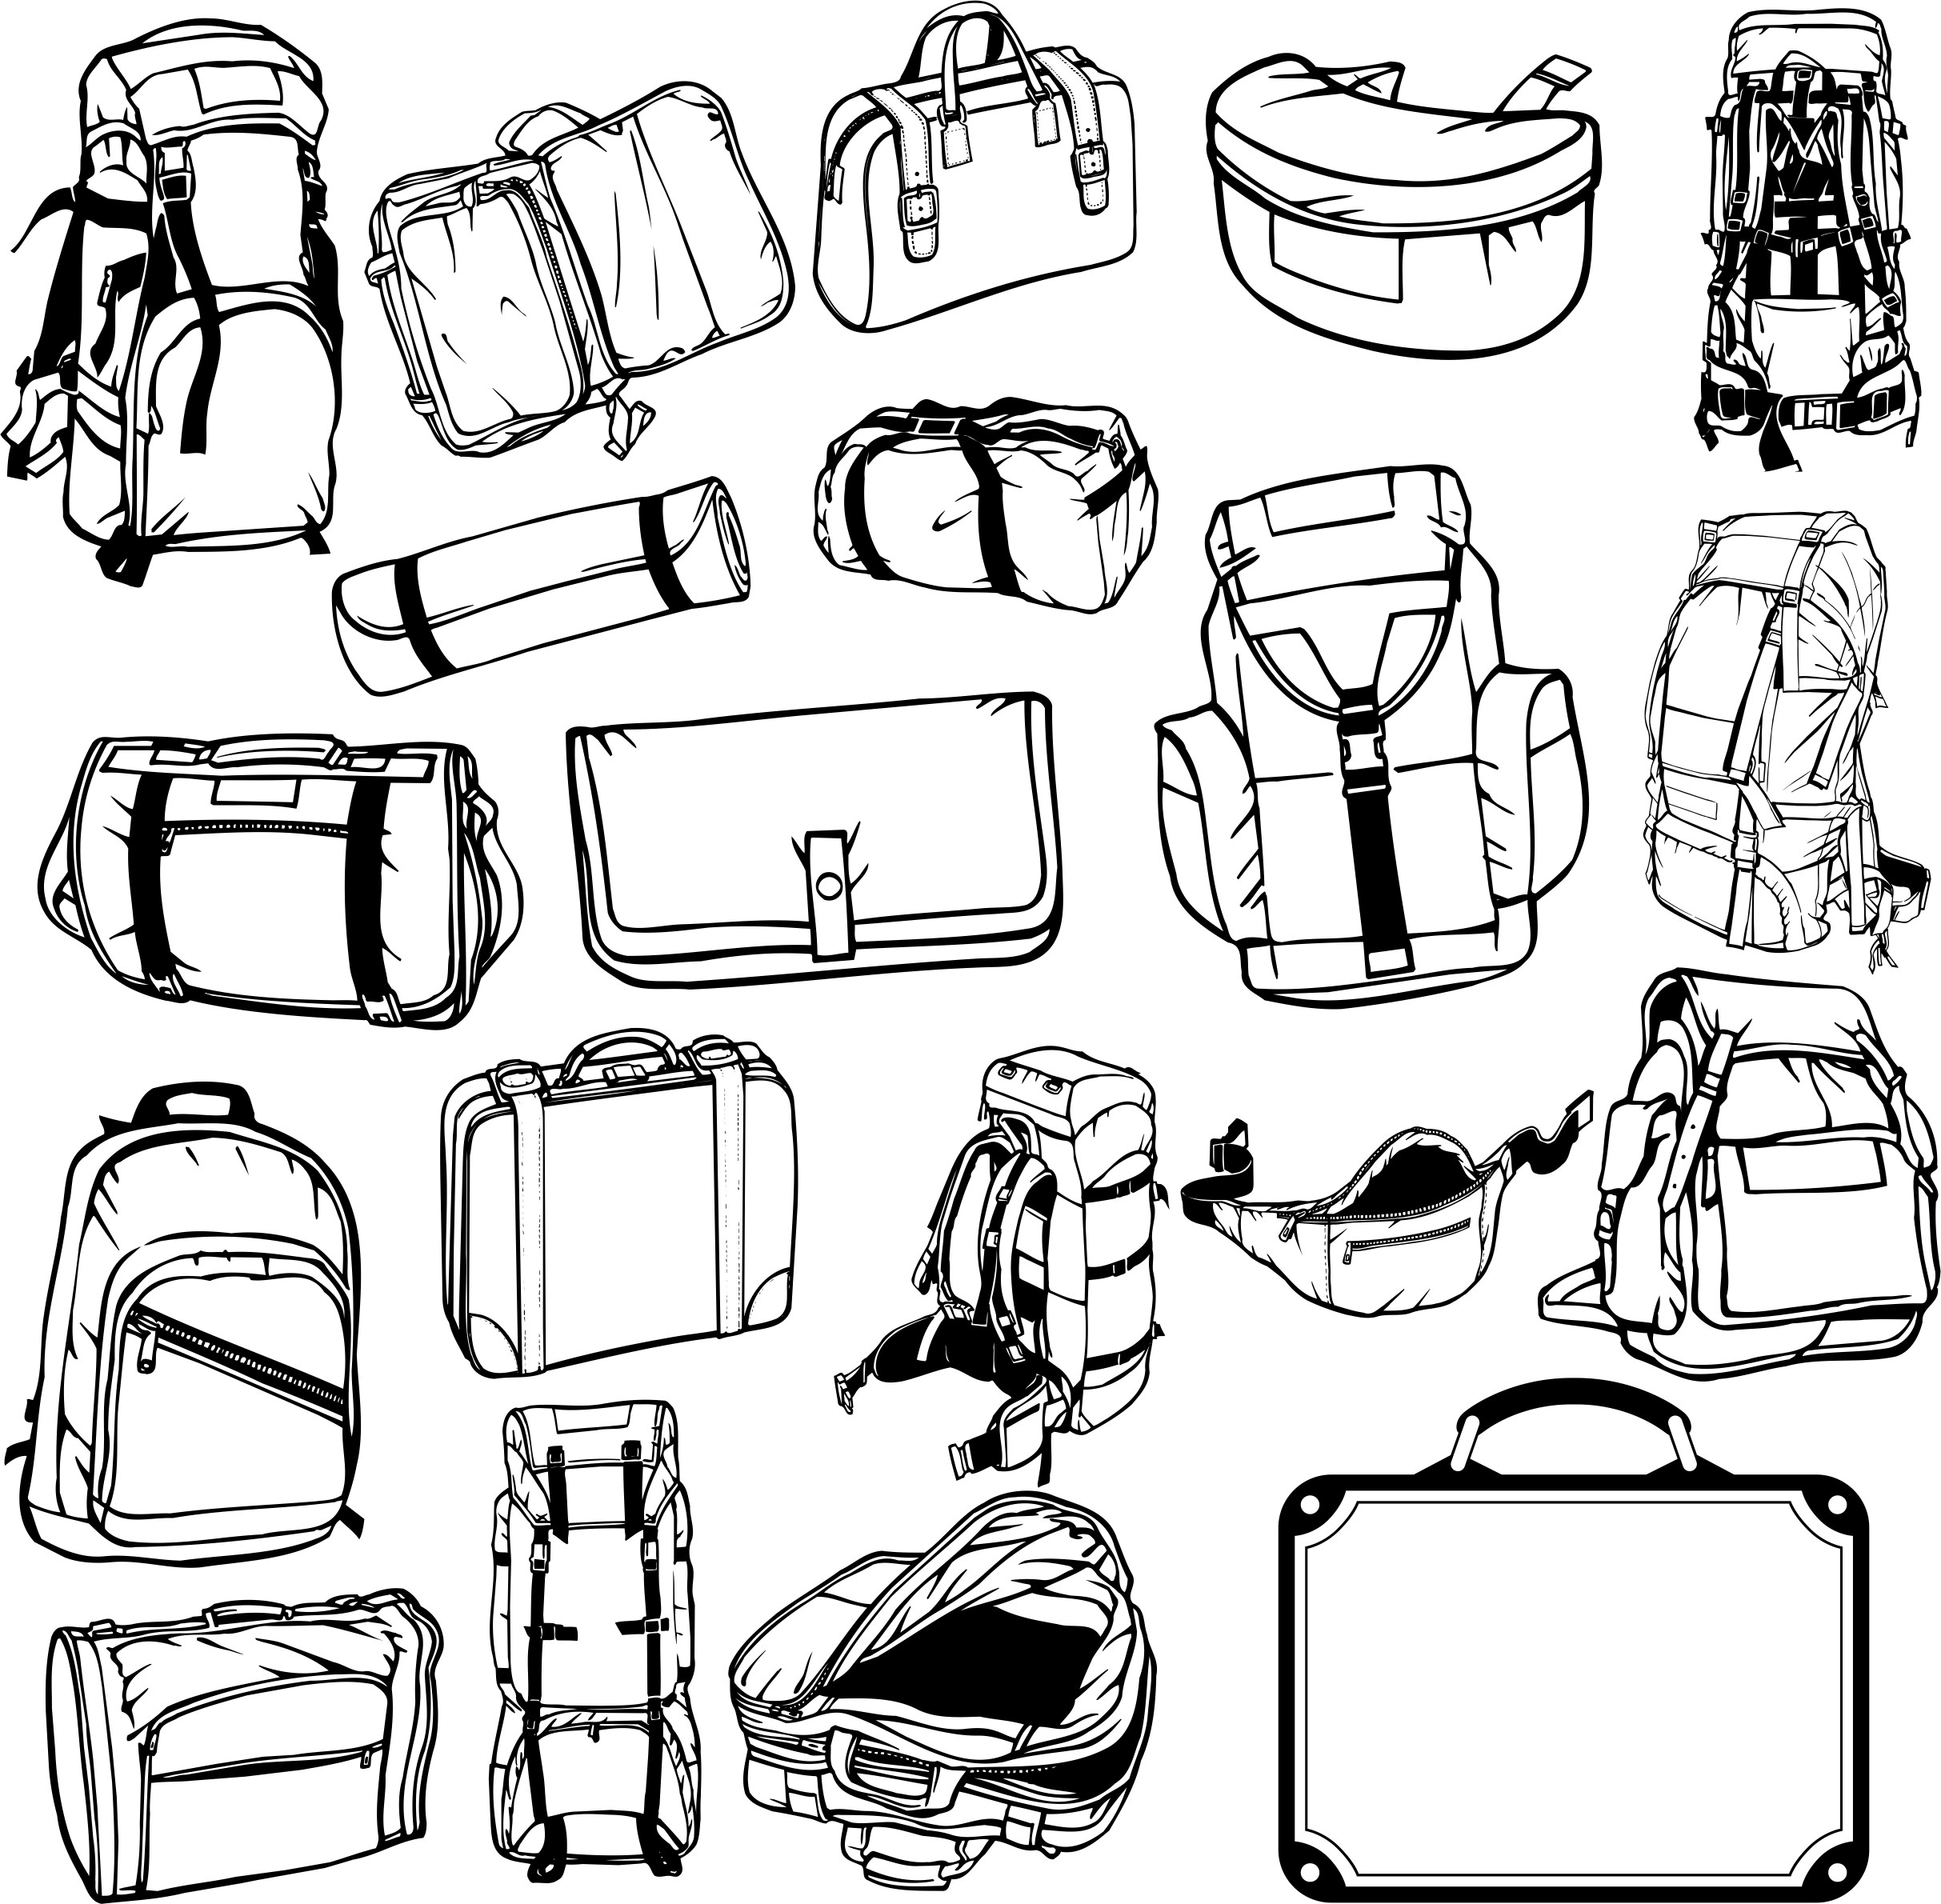 Collection Of Hiking Backpacks And Bags For Plotter Cutting Free CDR Vectors Art